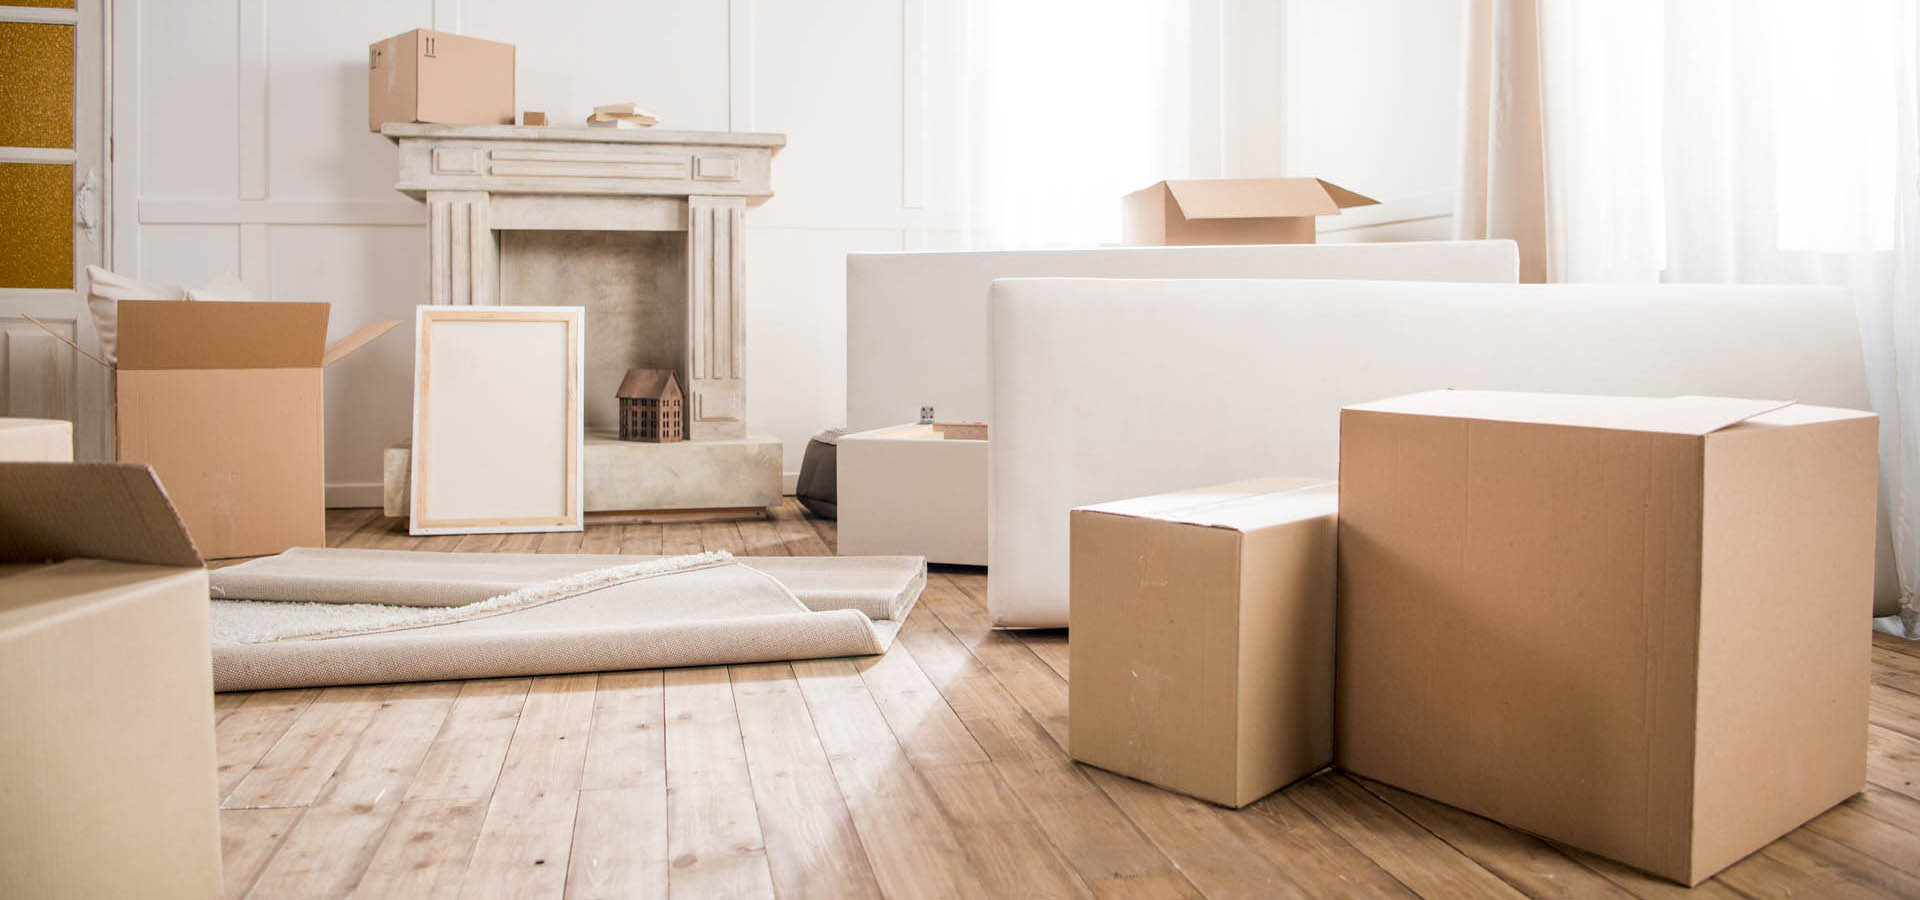 Moving and Finding a Storage Company